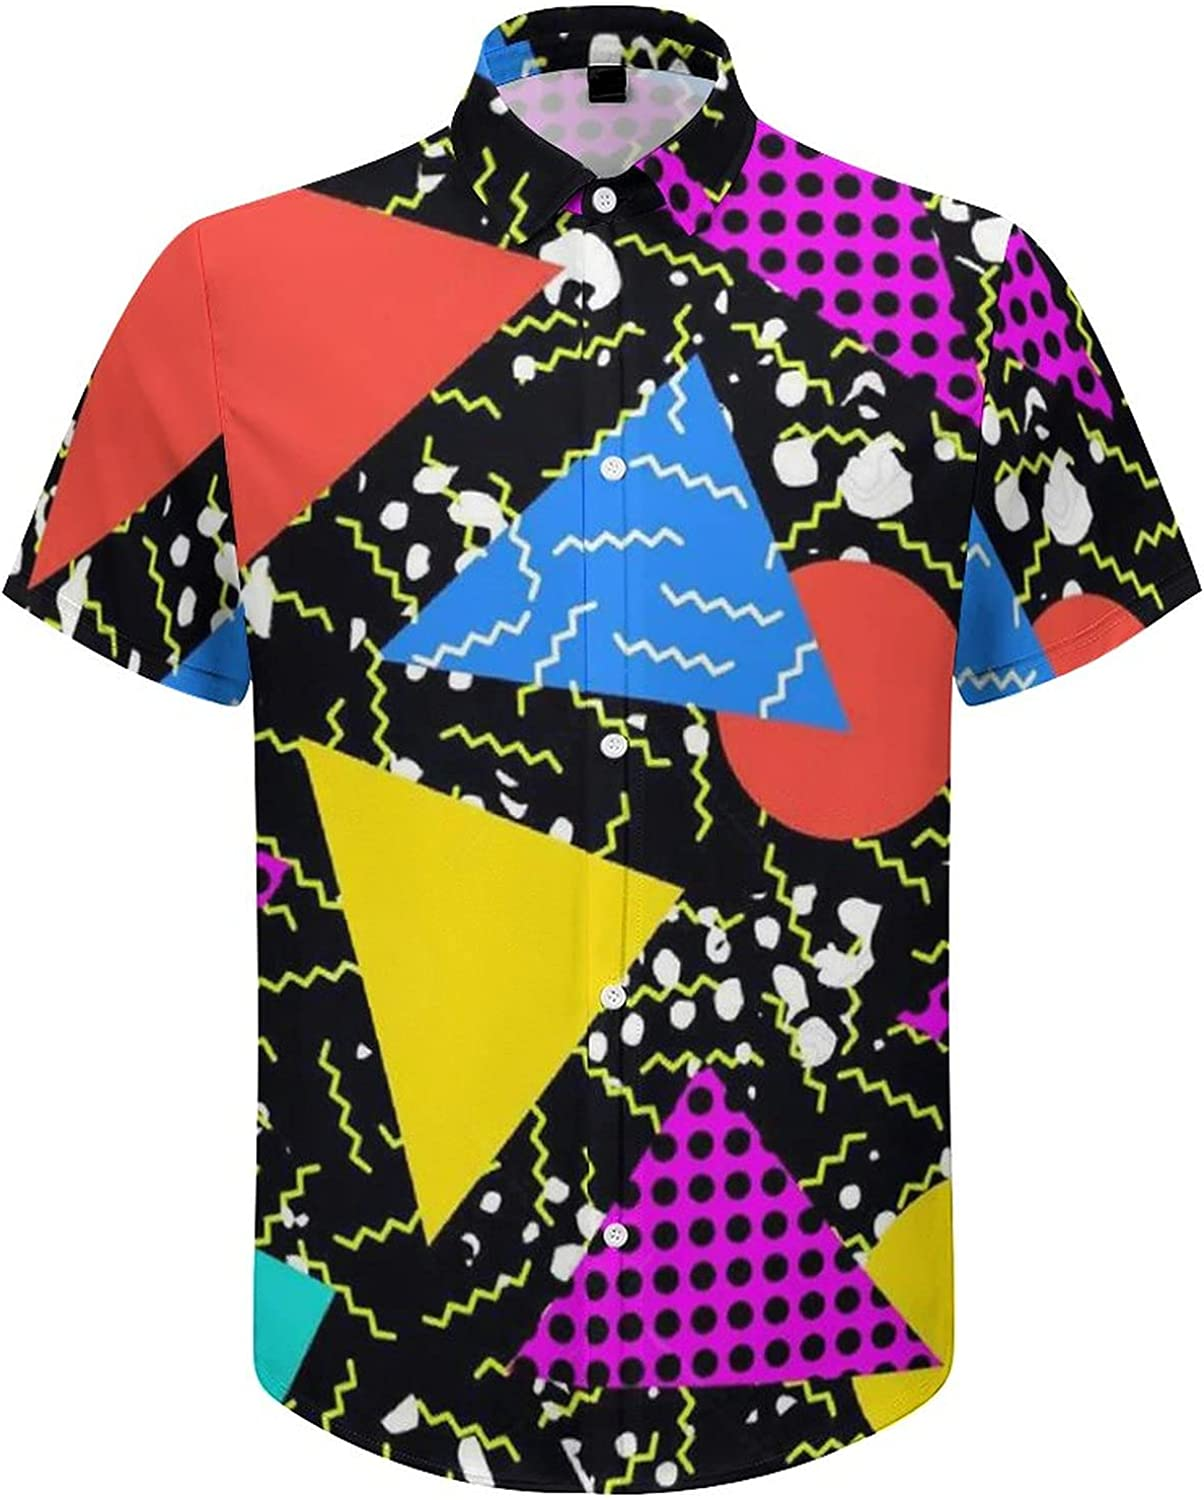 UOER Men's Button Down Shirt Retro Vintage 80s Memphis Funky Shortsleeve Summer Dress Shirts for Holiday